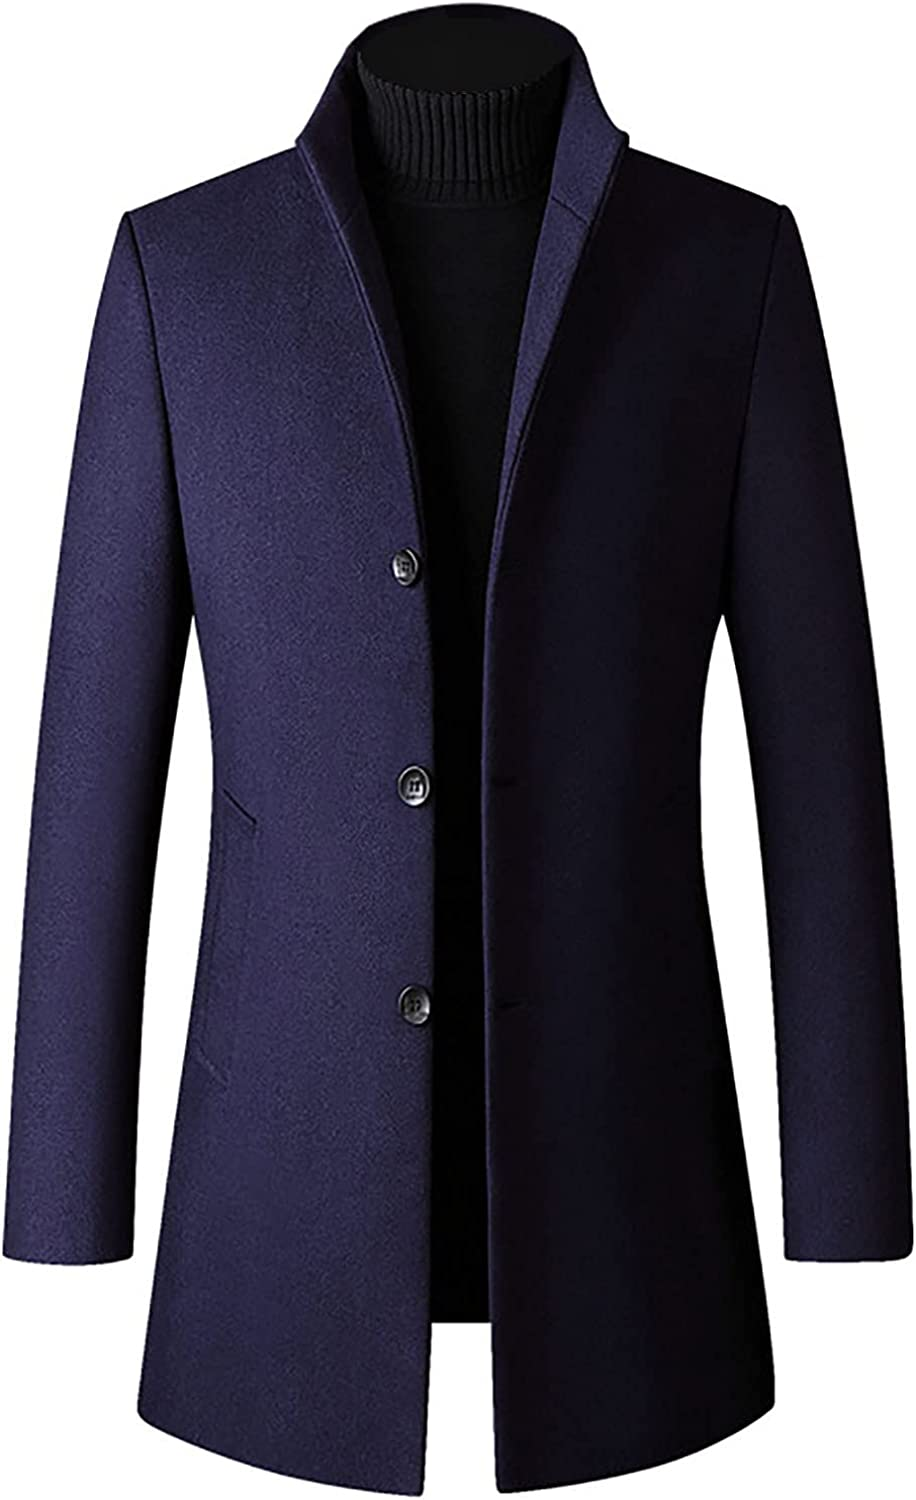 PAOGE Men's Long Direct sale of manufacturer Coat Autumn Sleeved Sta Max 86% OFF Color Winter Solid